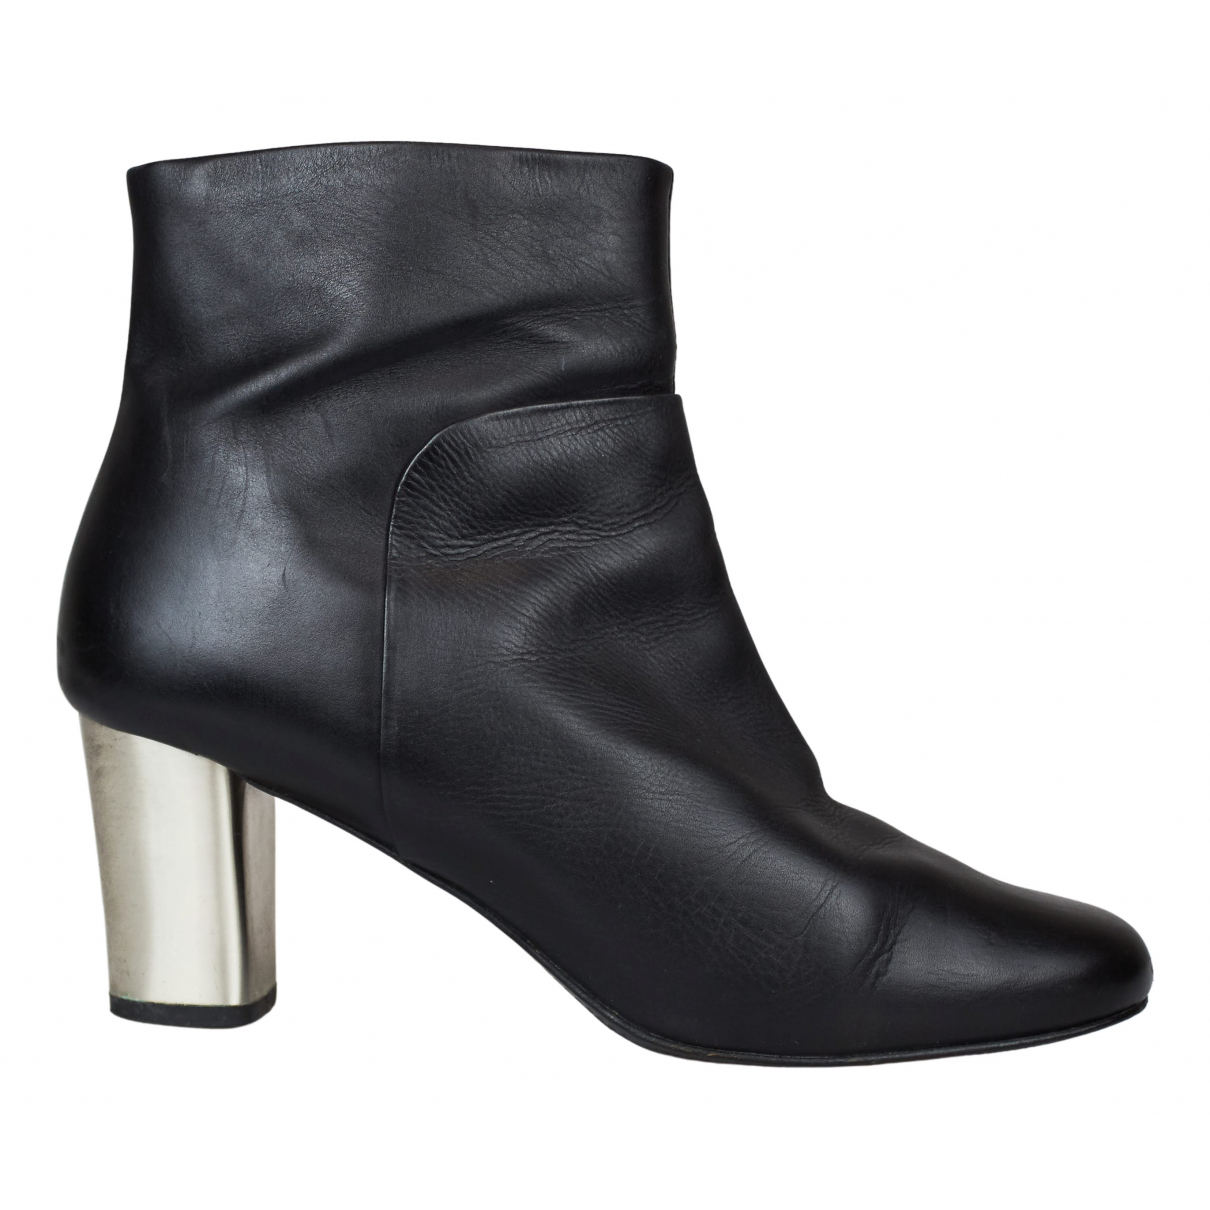 Uterque N Black Leather Ankle boots for Women 38 EU